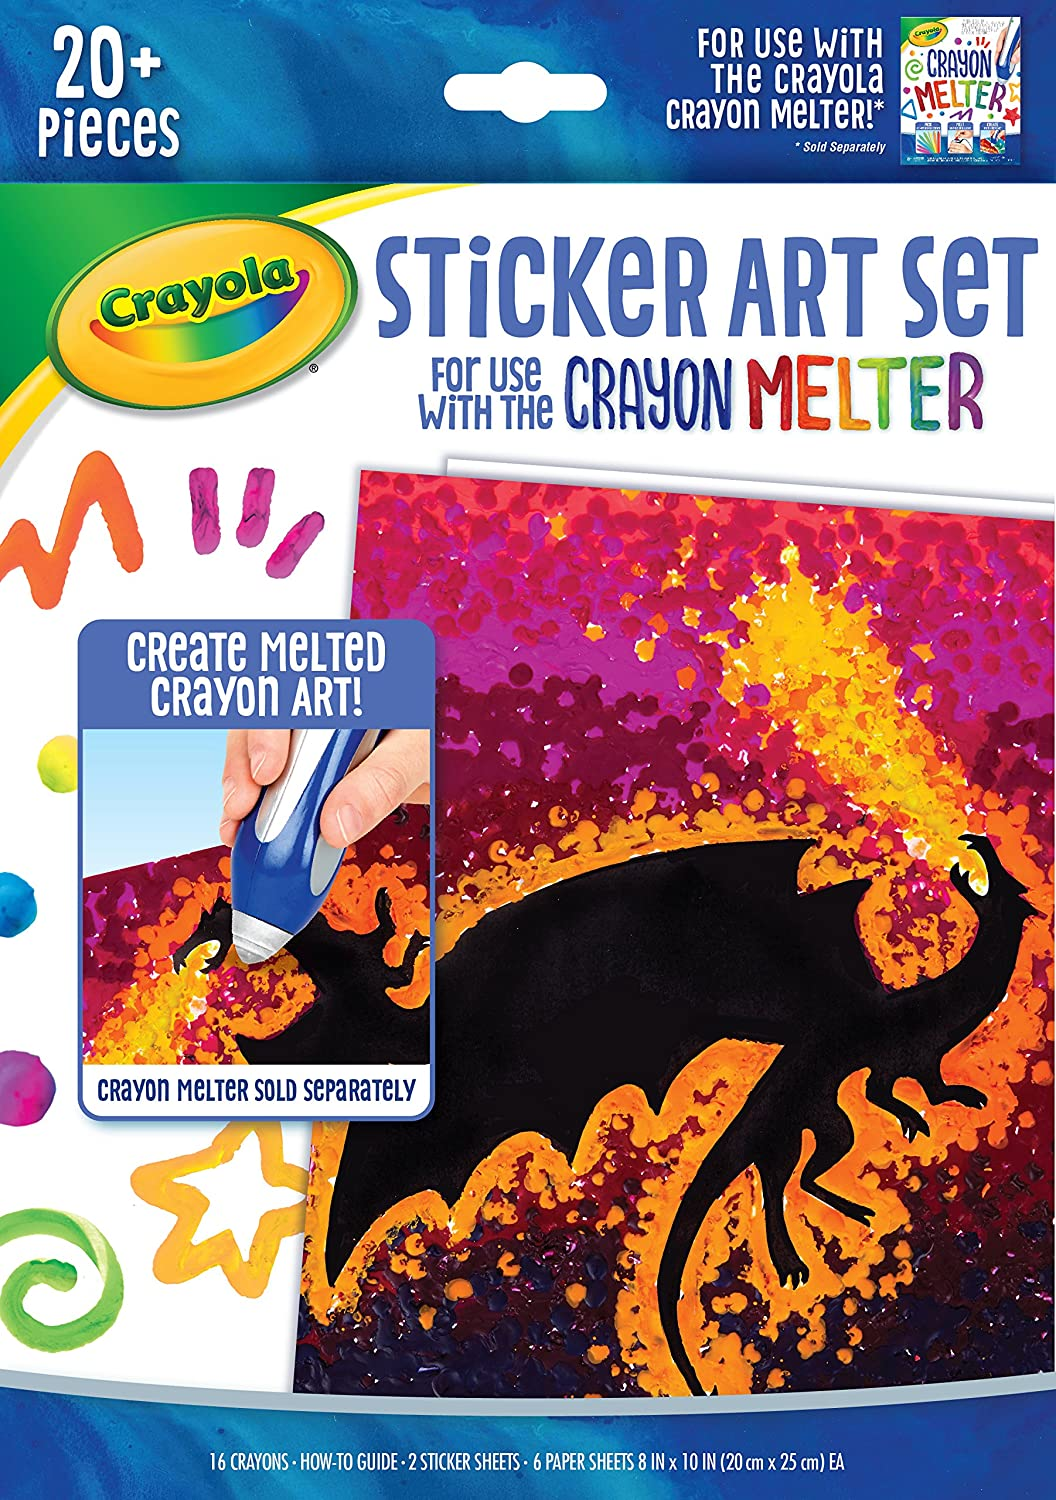 Crayola Silhouette Art Sticker Kit, Crayon Melter Expansion, Gift for Kids, 8, 9, 10, 11 Binney & Smith 04-0389